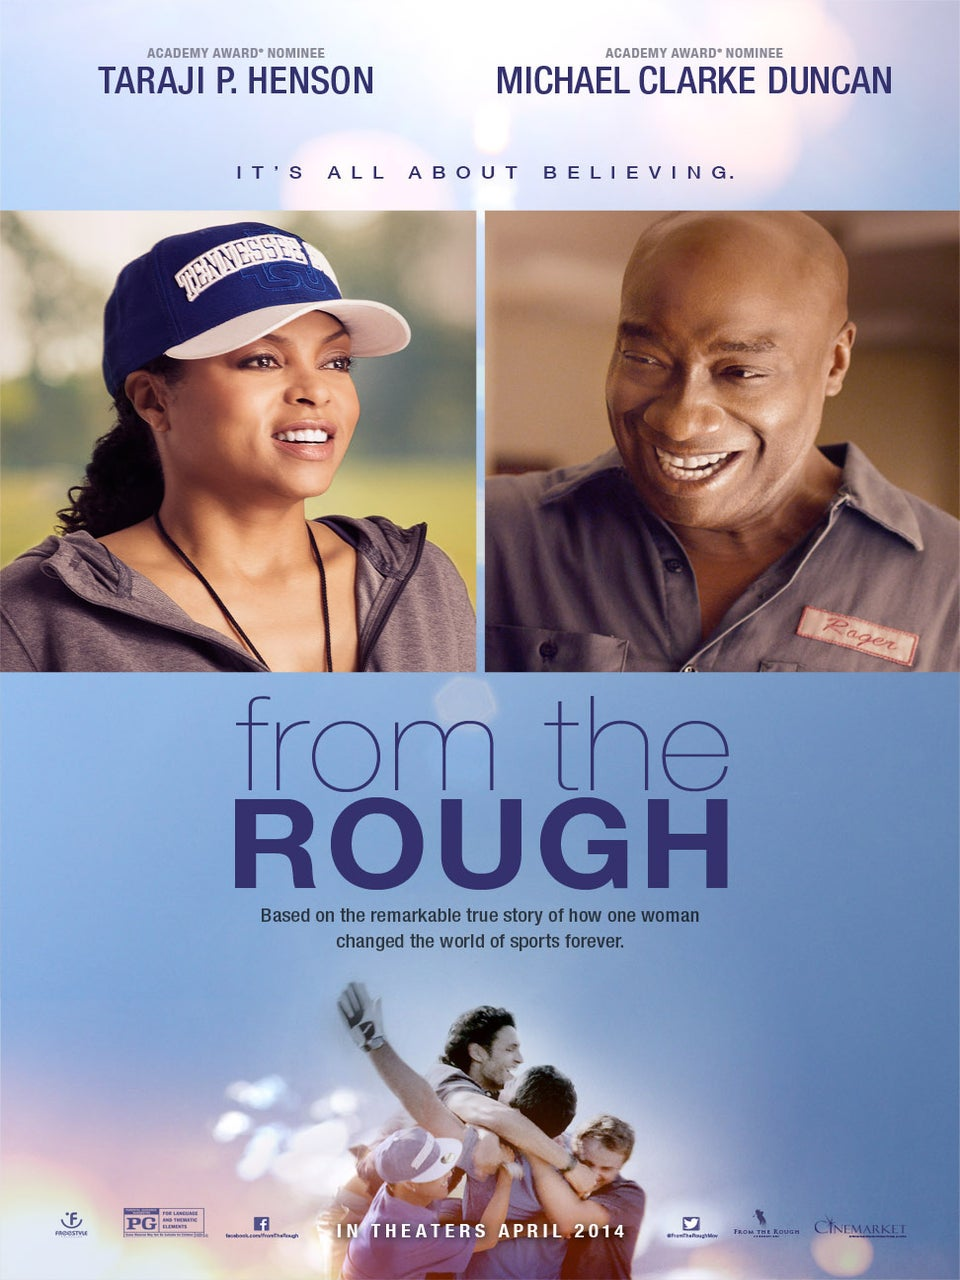 Poster Reveal: See Taraji P. Henson and the Late Michael Clarke Duncan in 'From the Rough'